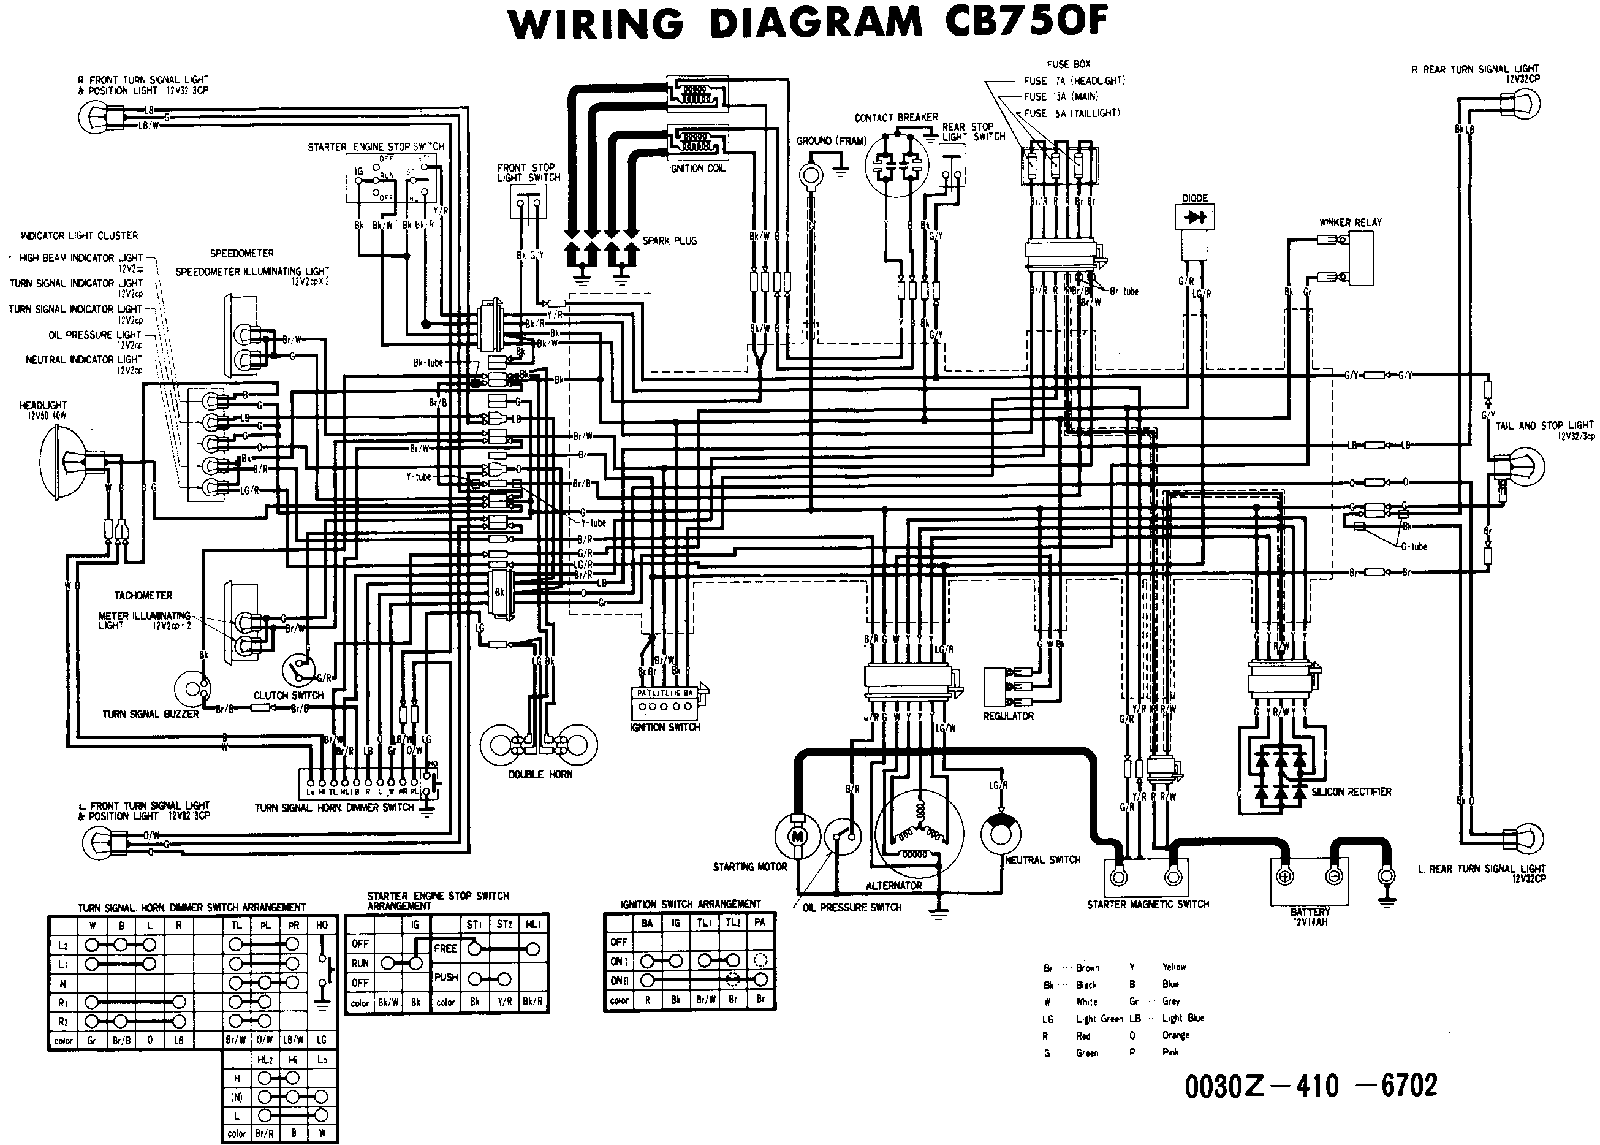 1980 honda cb750 custom wiring diagram wiring diagram and hernes 1980 cb750c wiring harness diagram and hernes